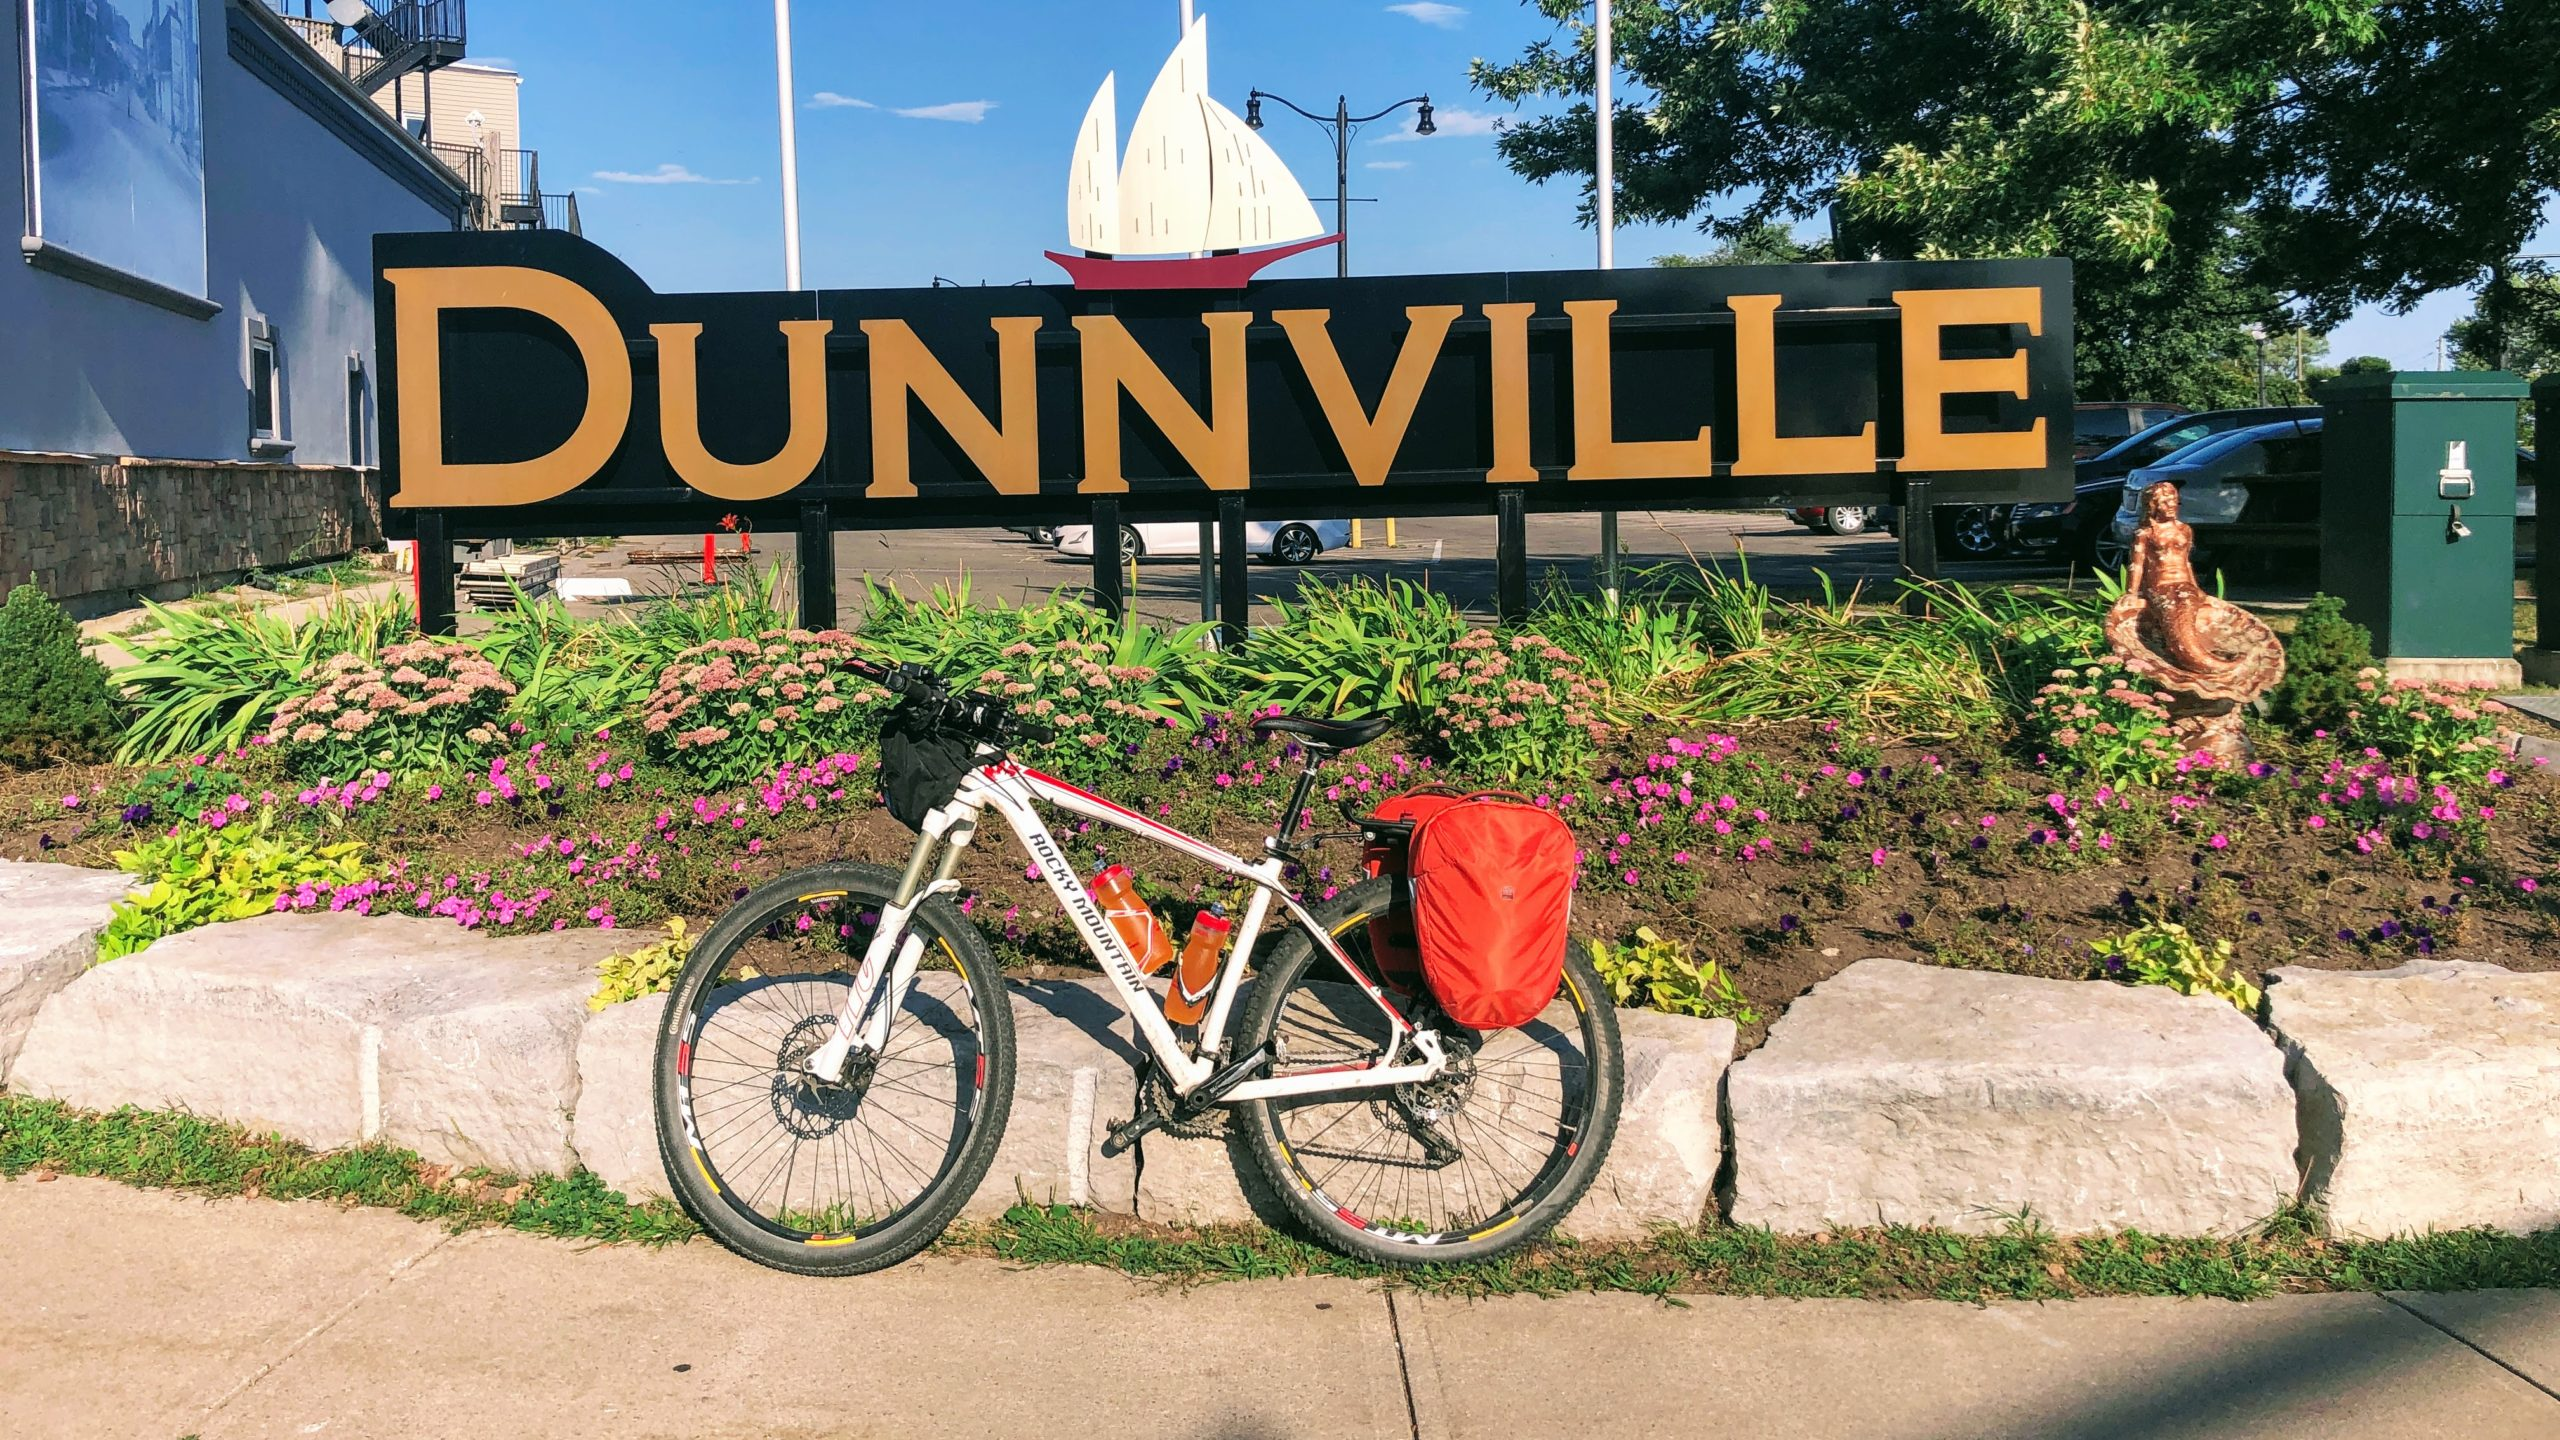 Parking in front of the Dunnville ON sign